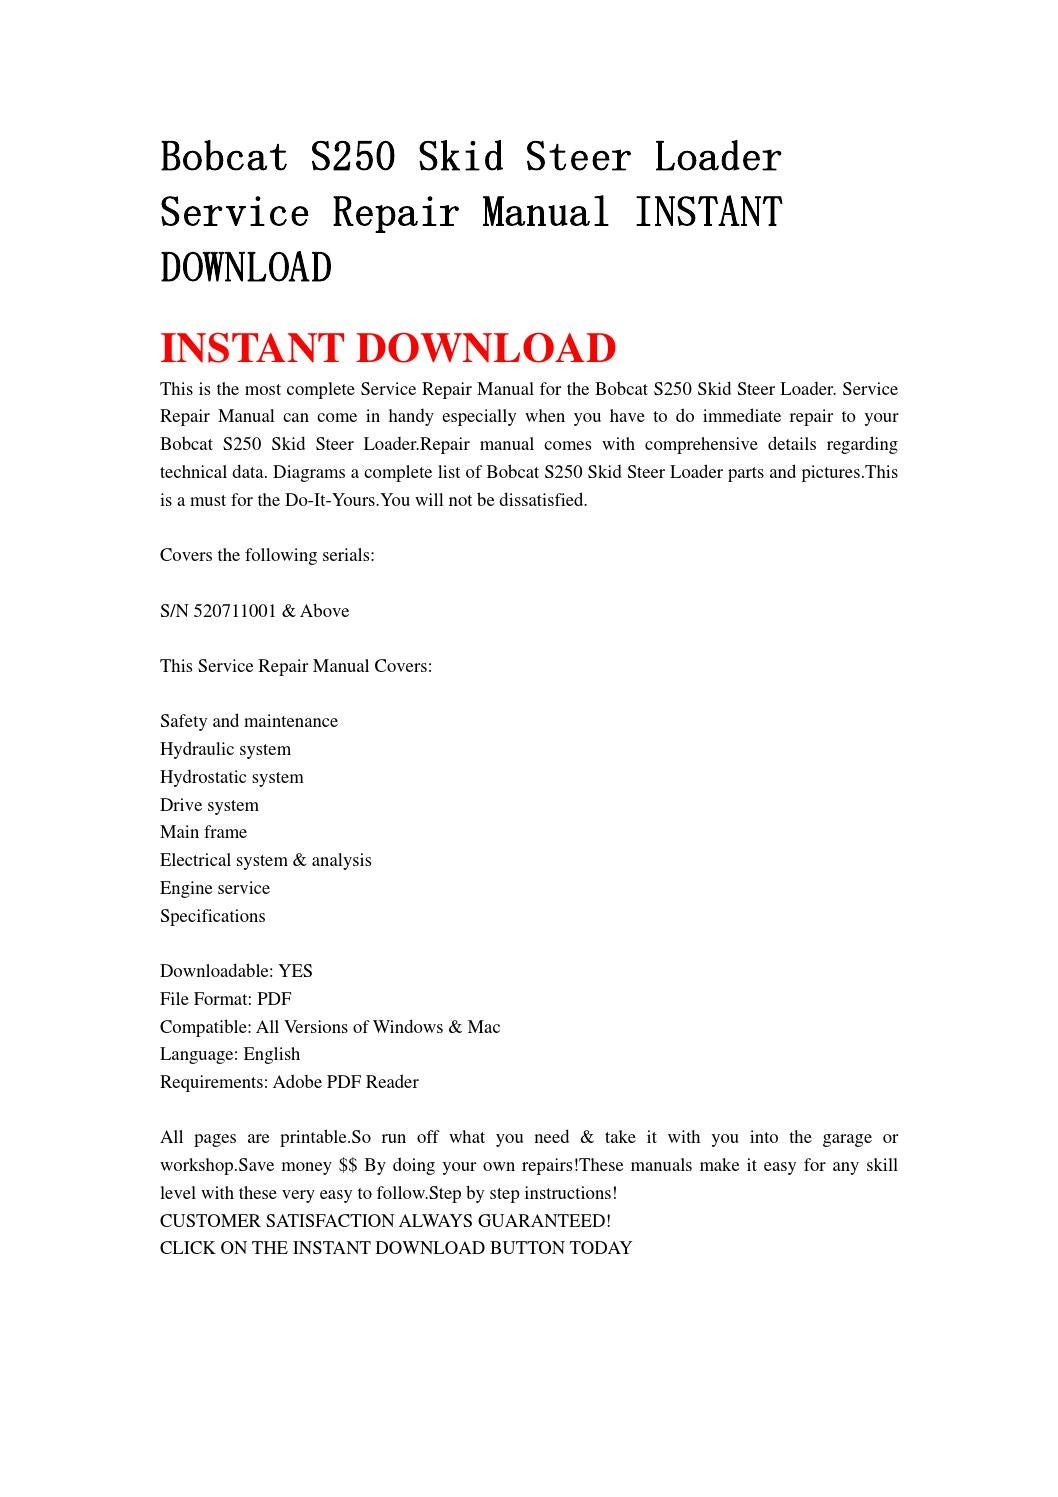 hight resolution of bobcat s250 skid steer loader service repair manual instant download by edrf456 issuu